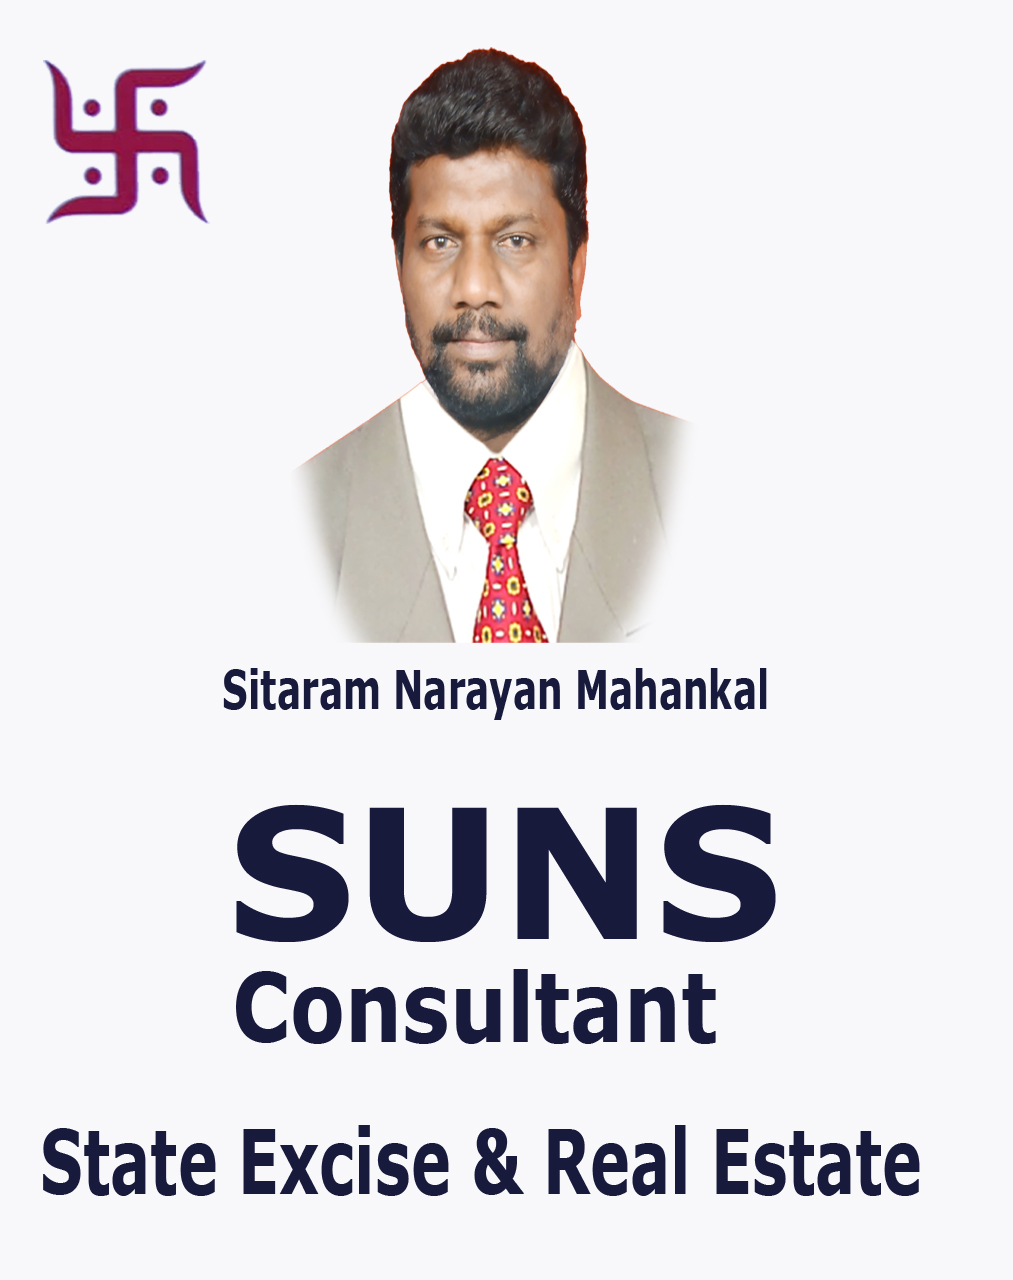 SUNS CONSULTANT<BR>STATE EXCISE & REAL ESTATE